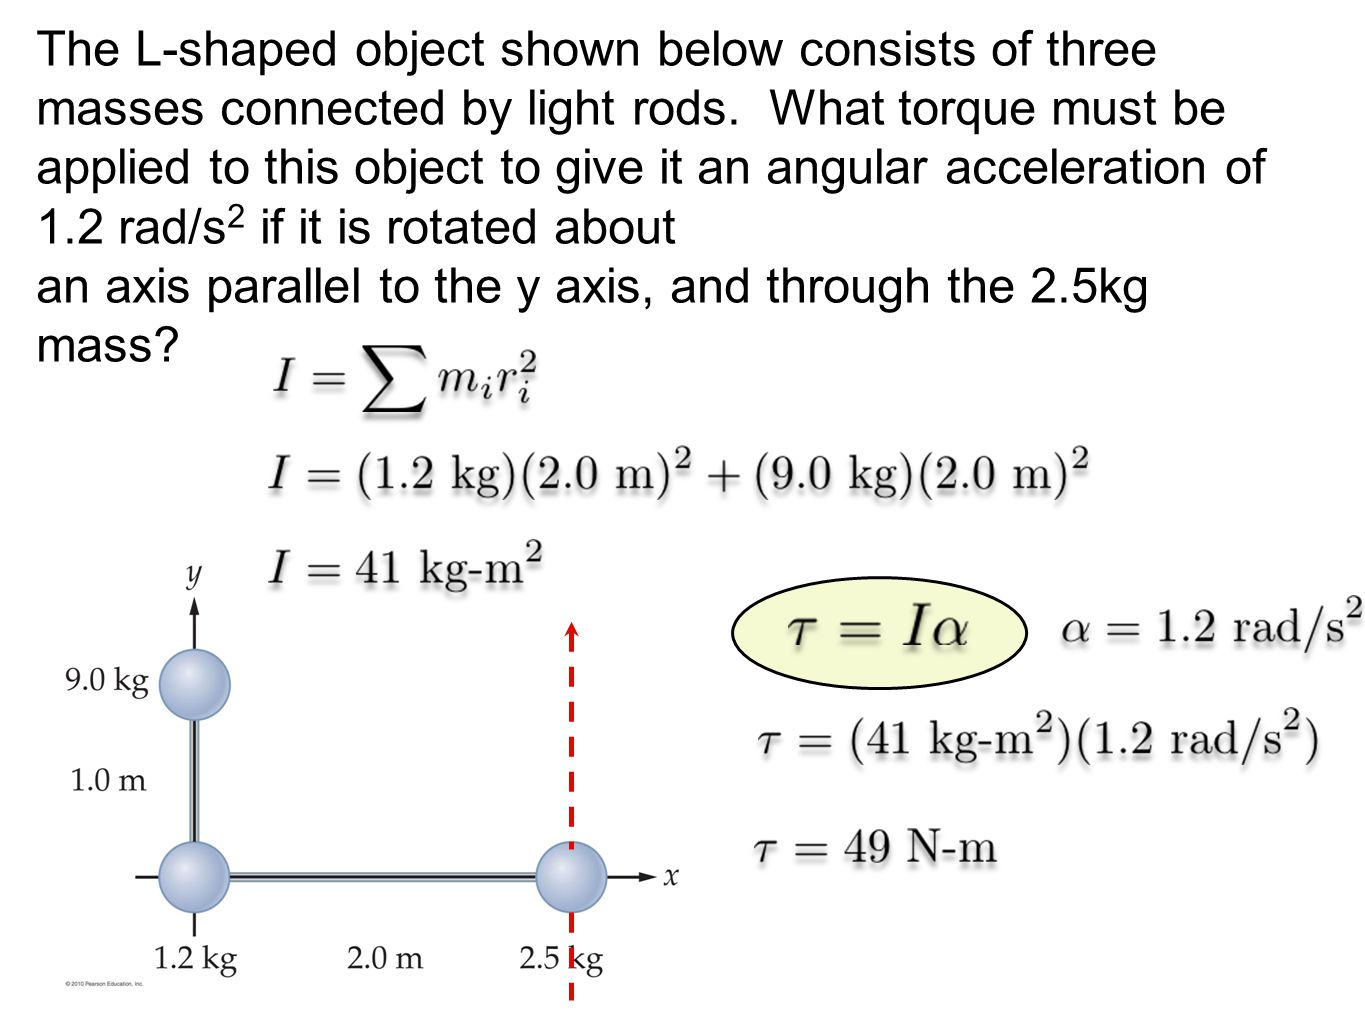 The L-shaped object shown below consists of three masses connected by light rods. What torque must be applied to this object to give it an angular acceleration of 1.2 rad/s2 if it is rotated about